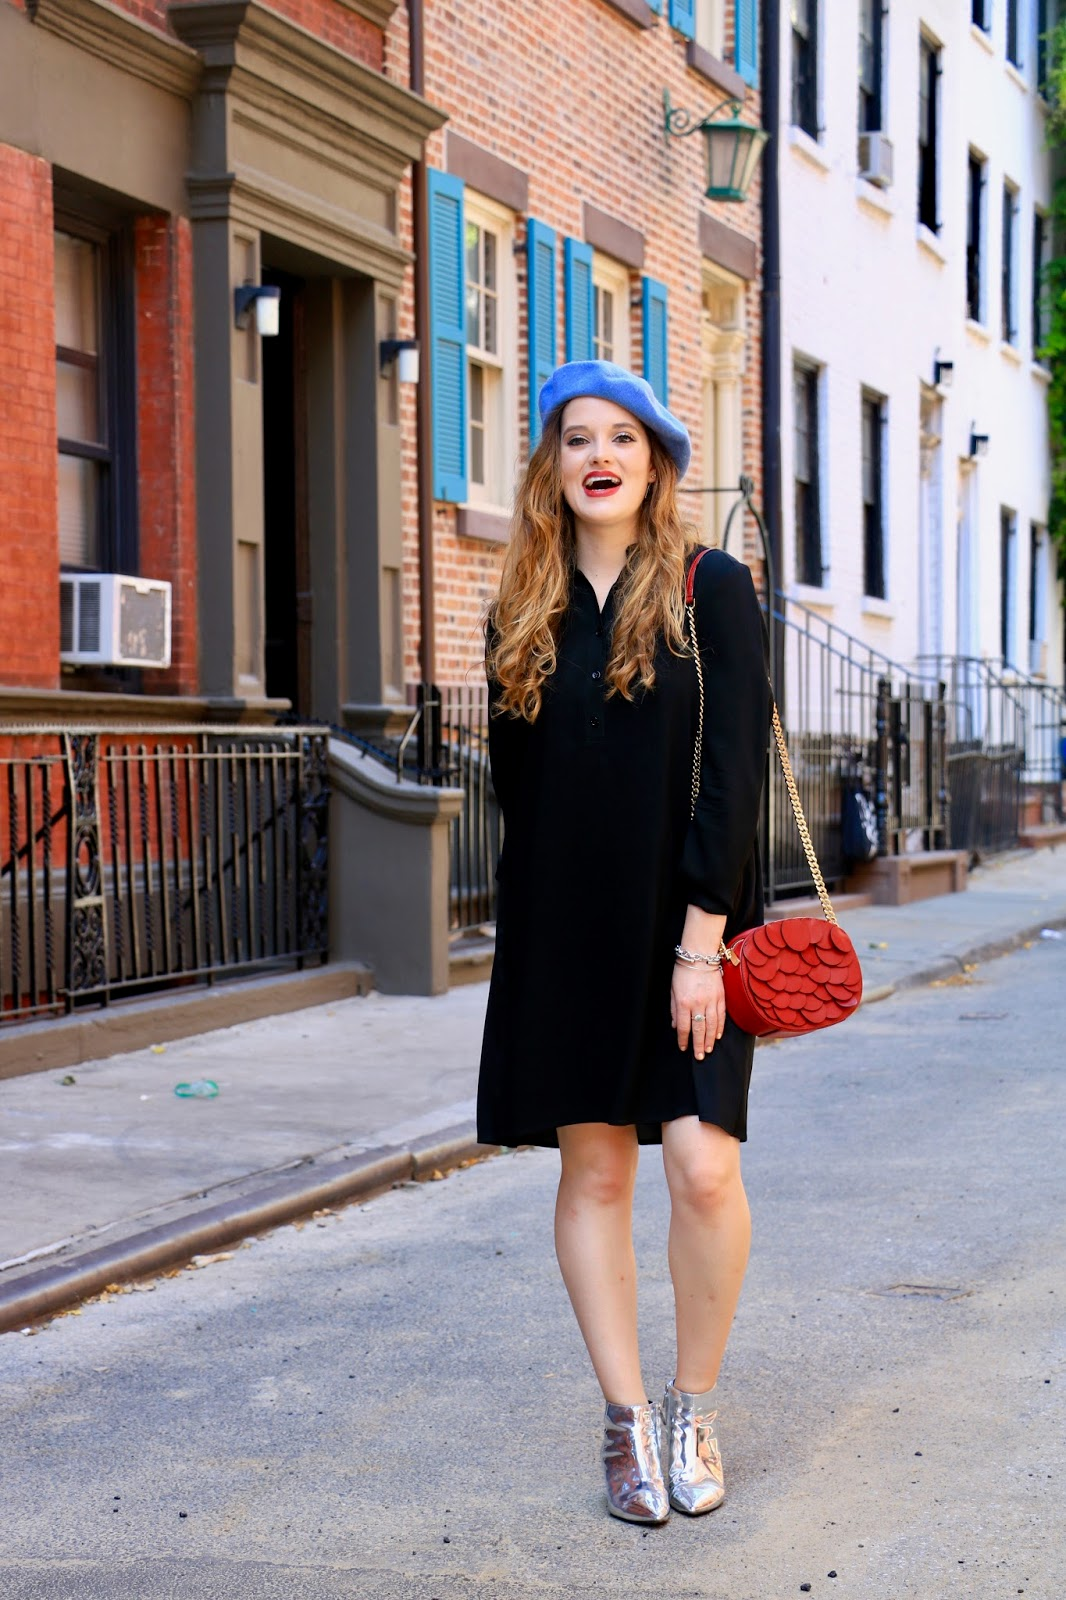 Fashion blogger Kathleen Harper showing off how to wear a beret